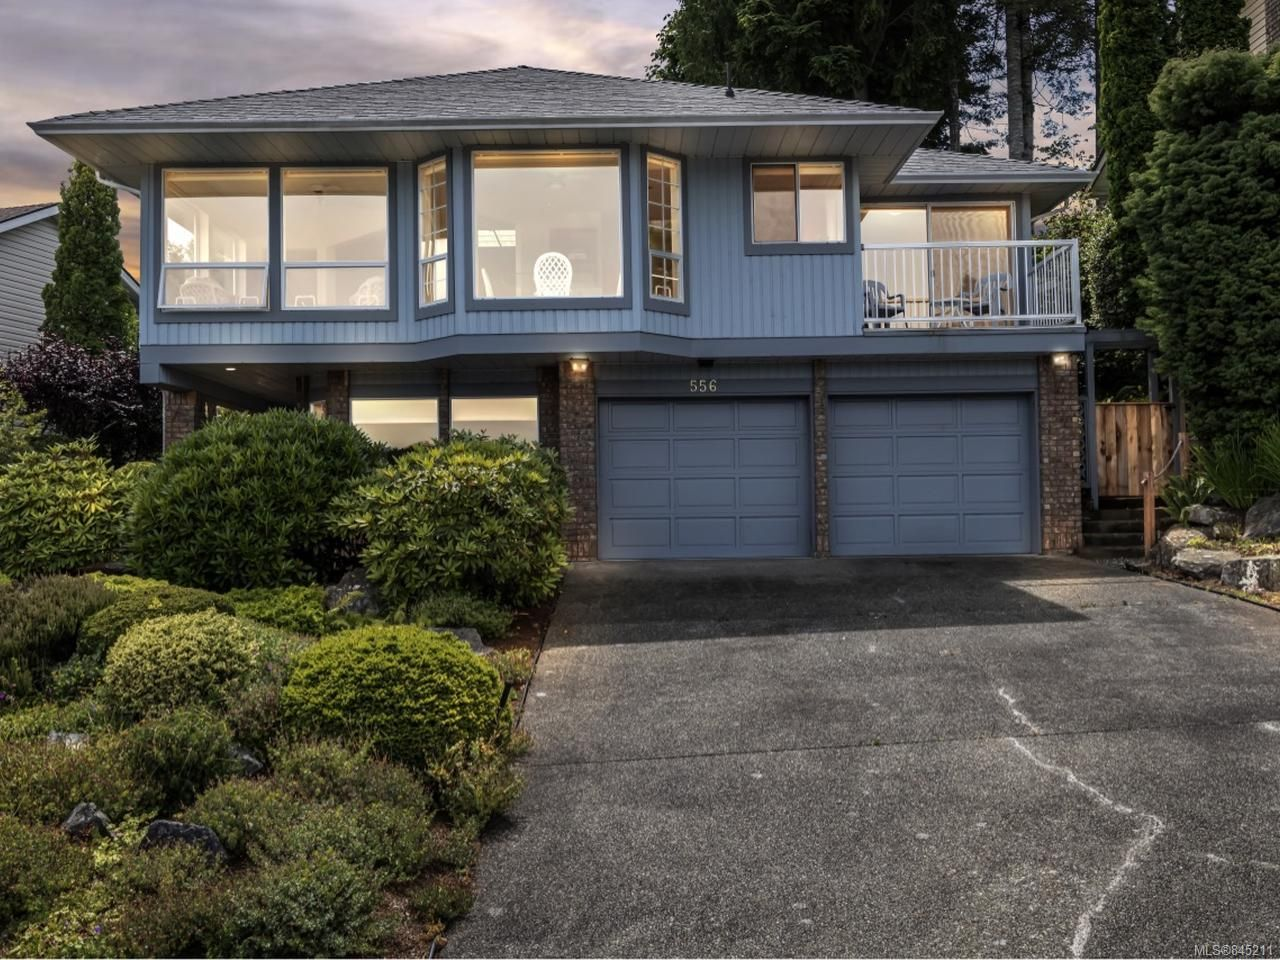 Main Photo: 556 Marine View in COBBLE HILL: ML Cobble Hill House for sale (Malahat & Area)  : MLS®# 845211